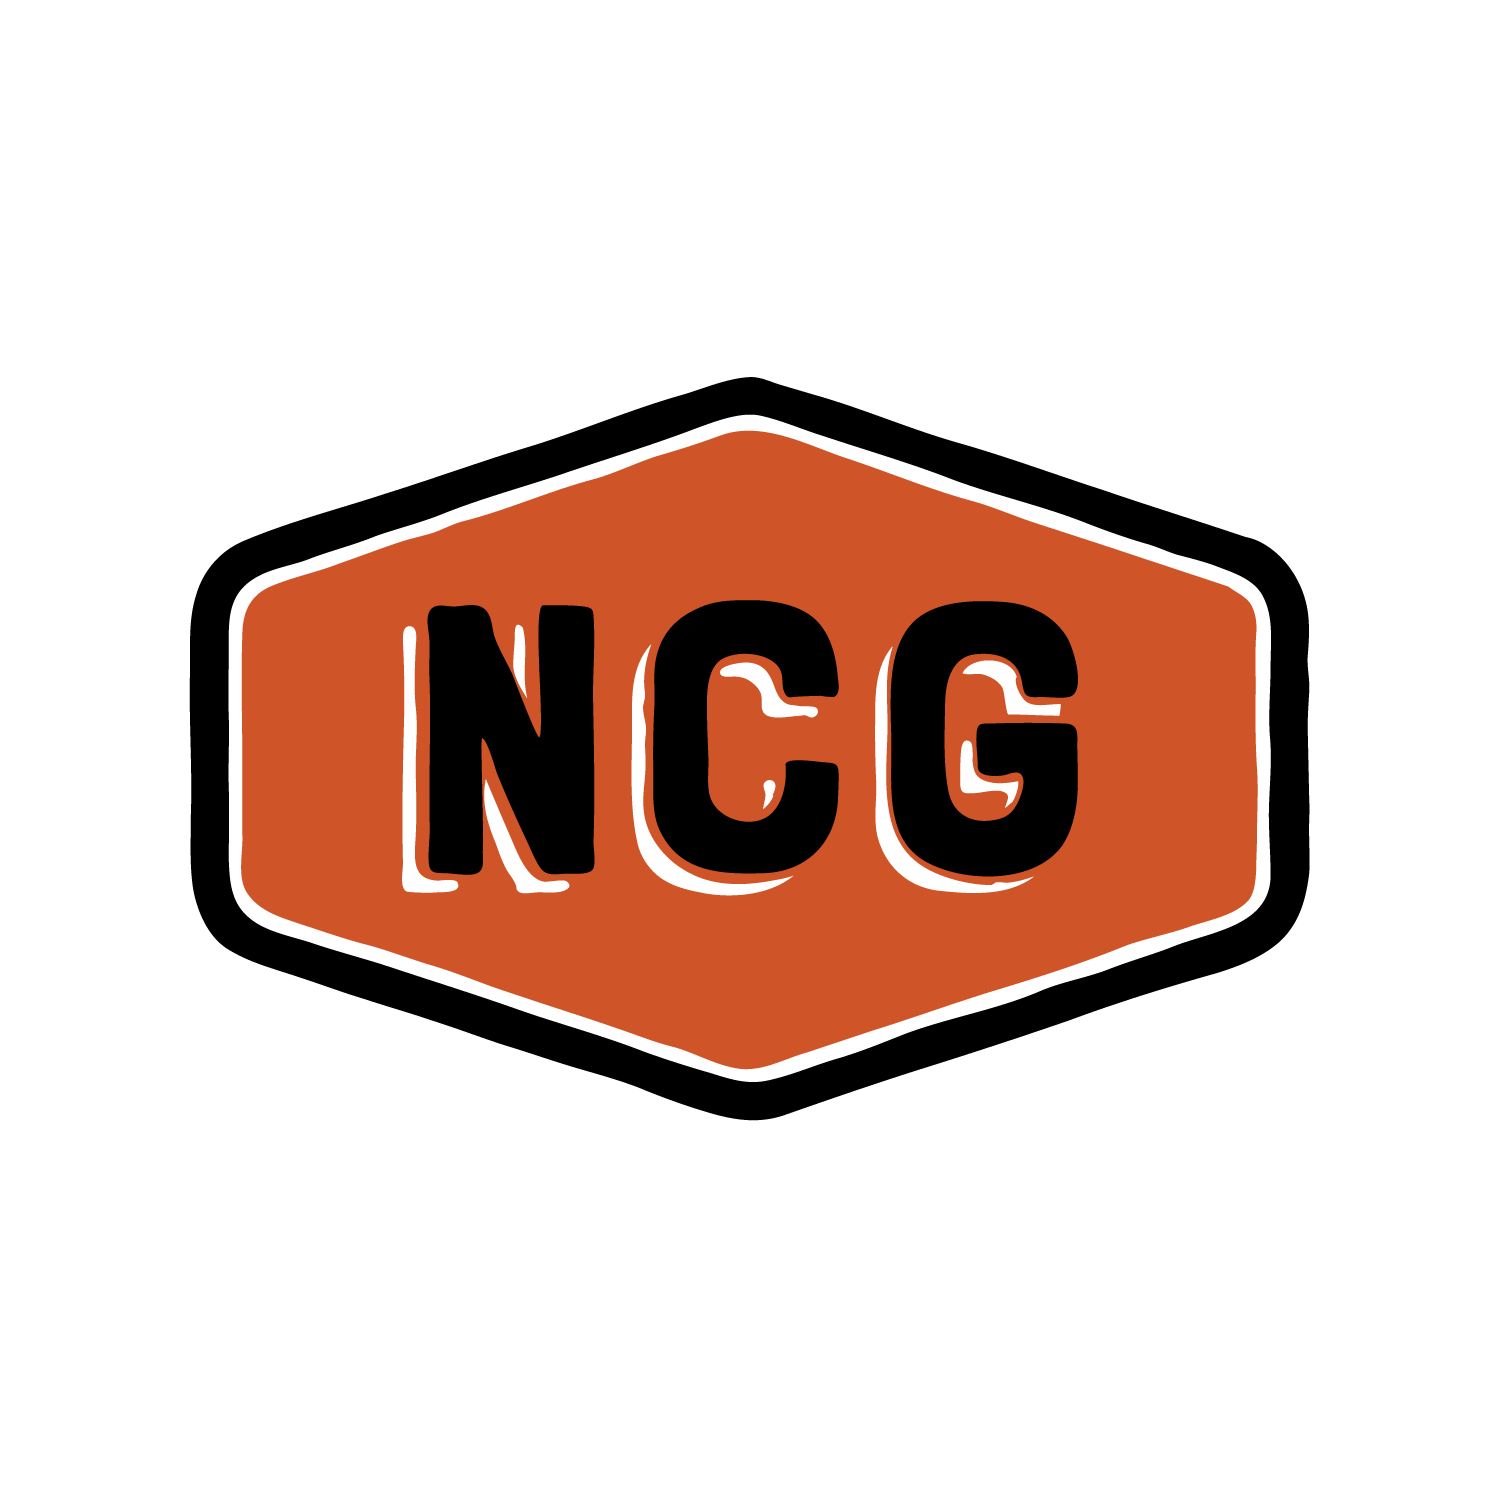 NCG Initials and Goat's Avatar